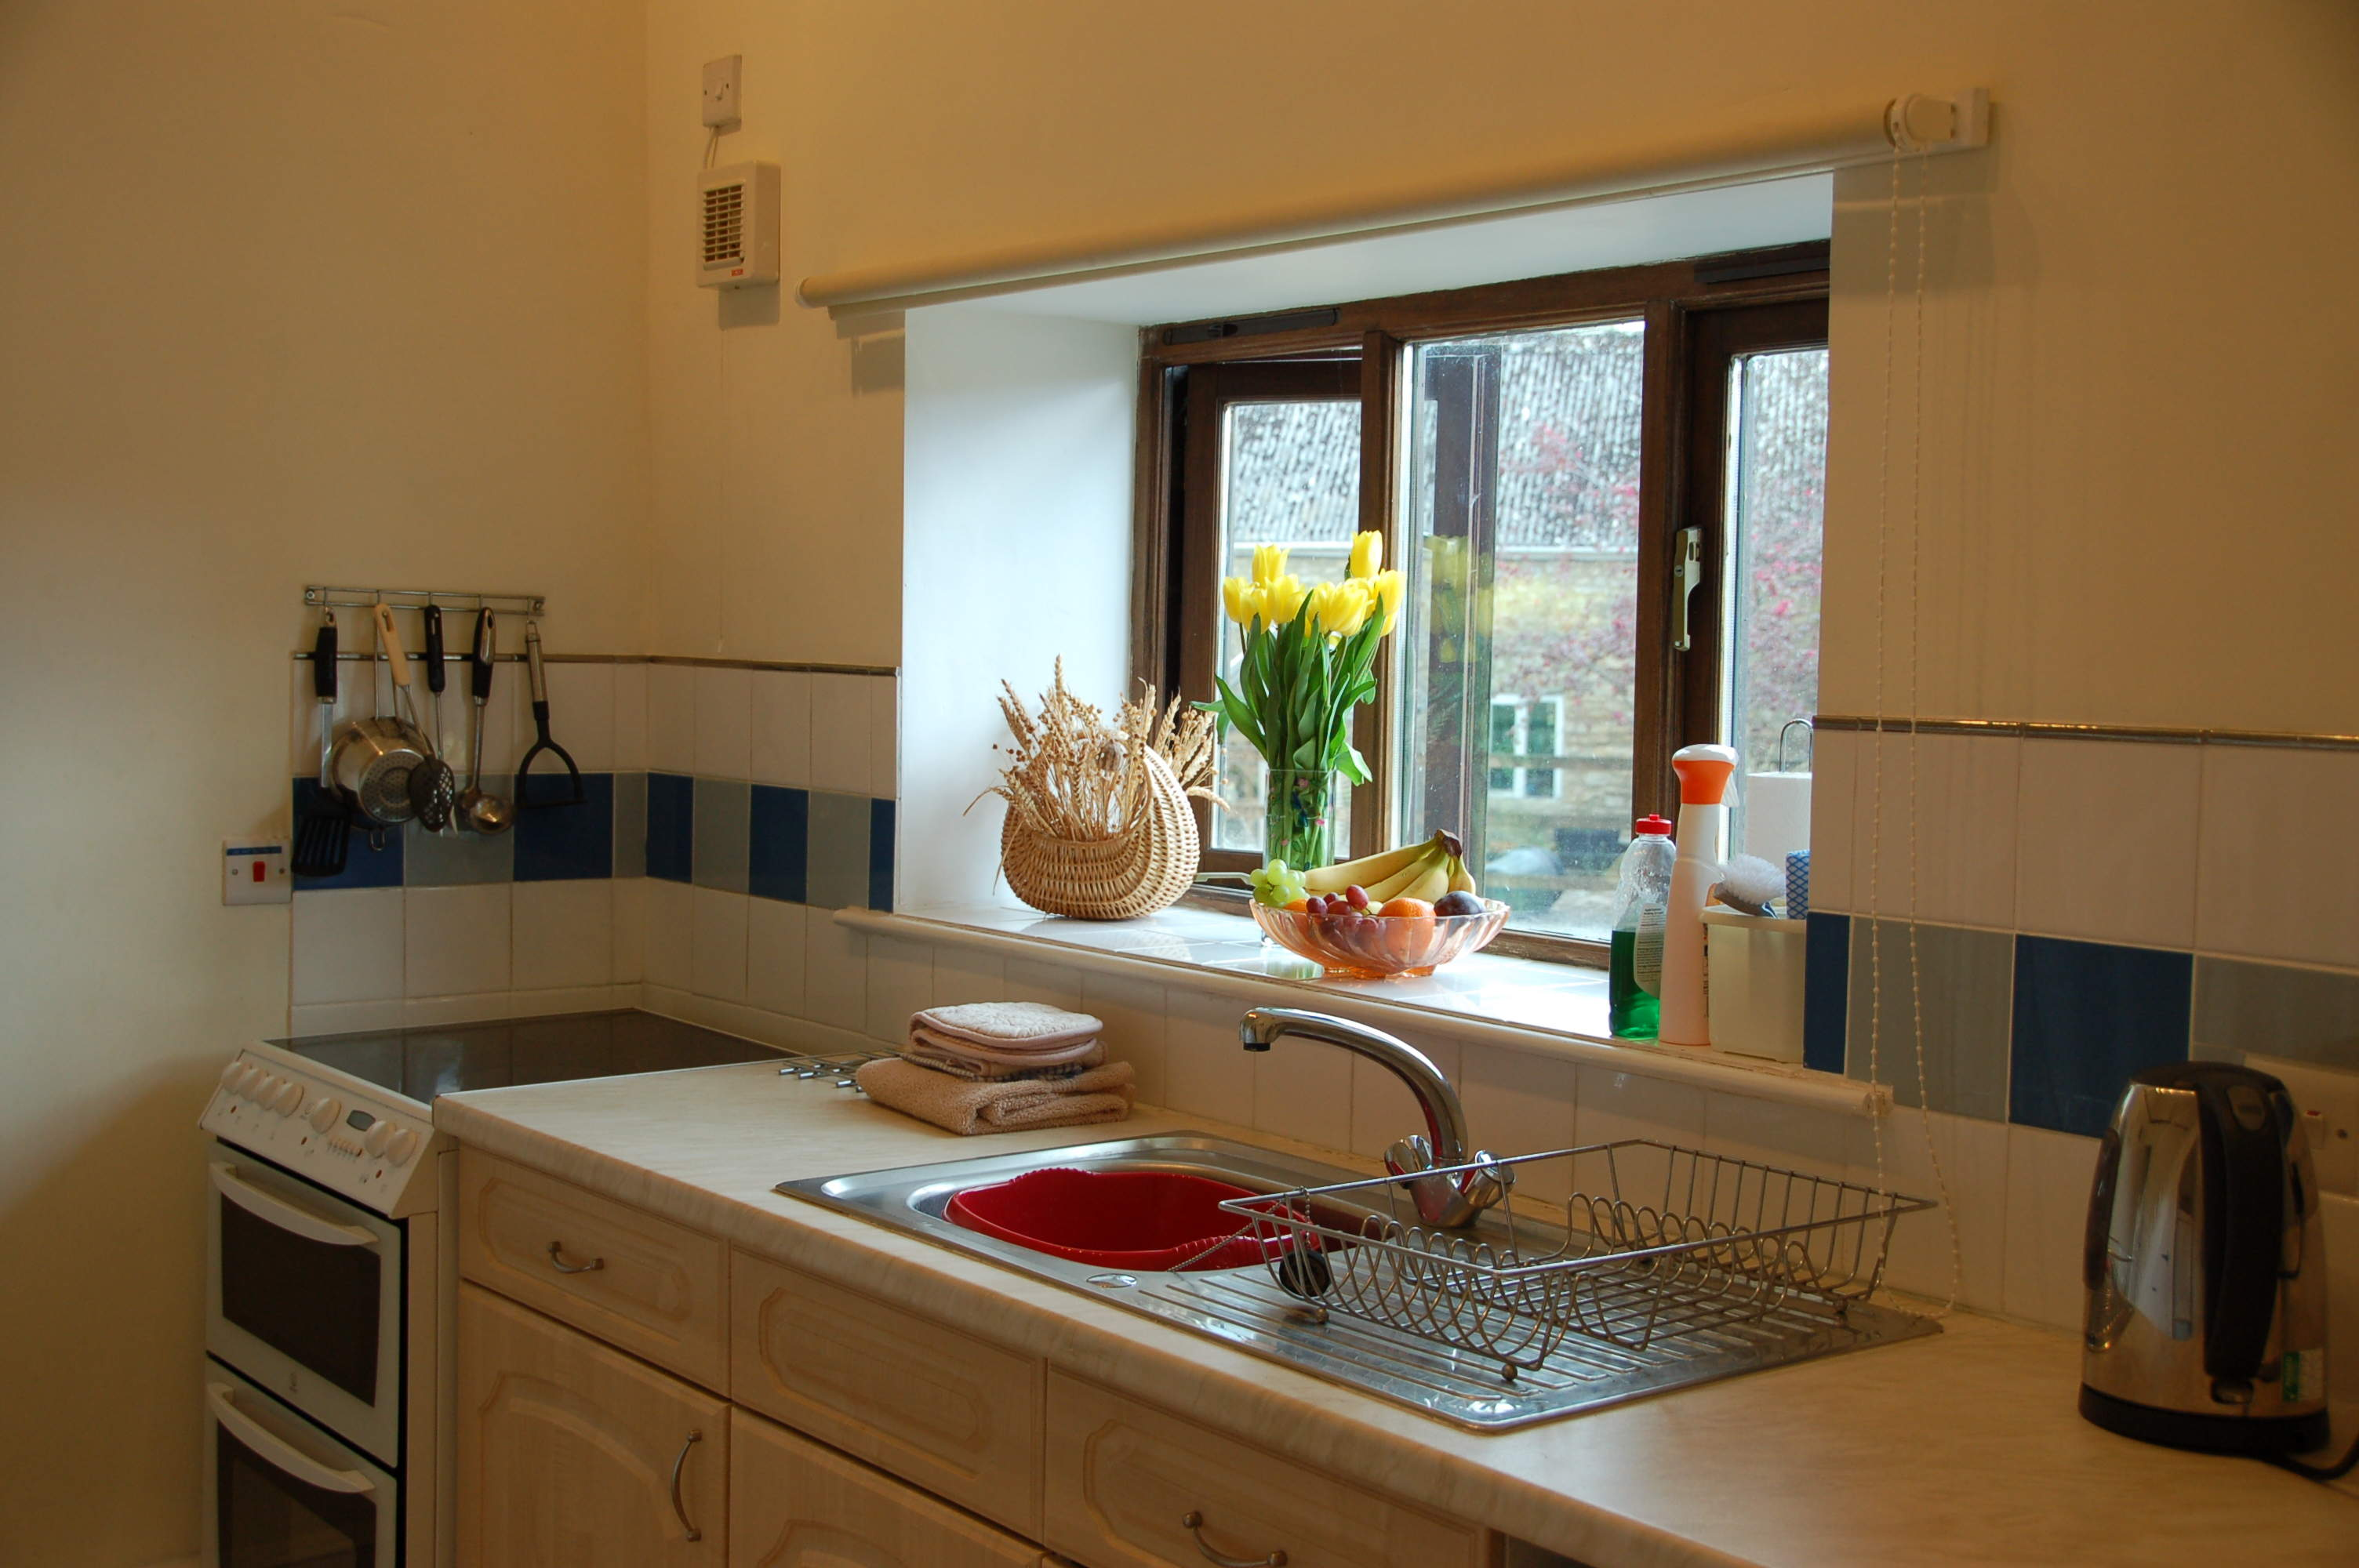 fully fitted kitchen with full size oven with ceramic hob, microwave, full size fridge freezer